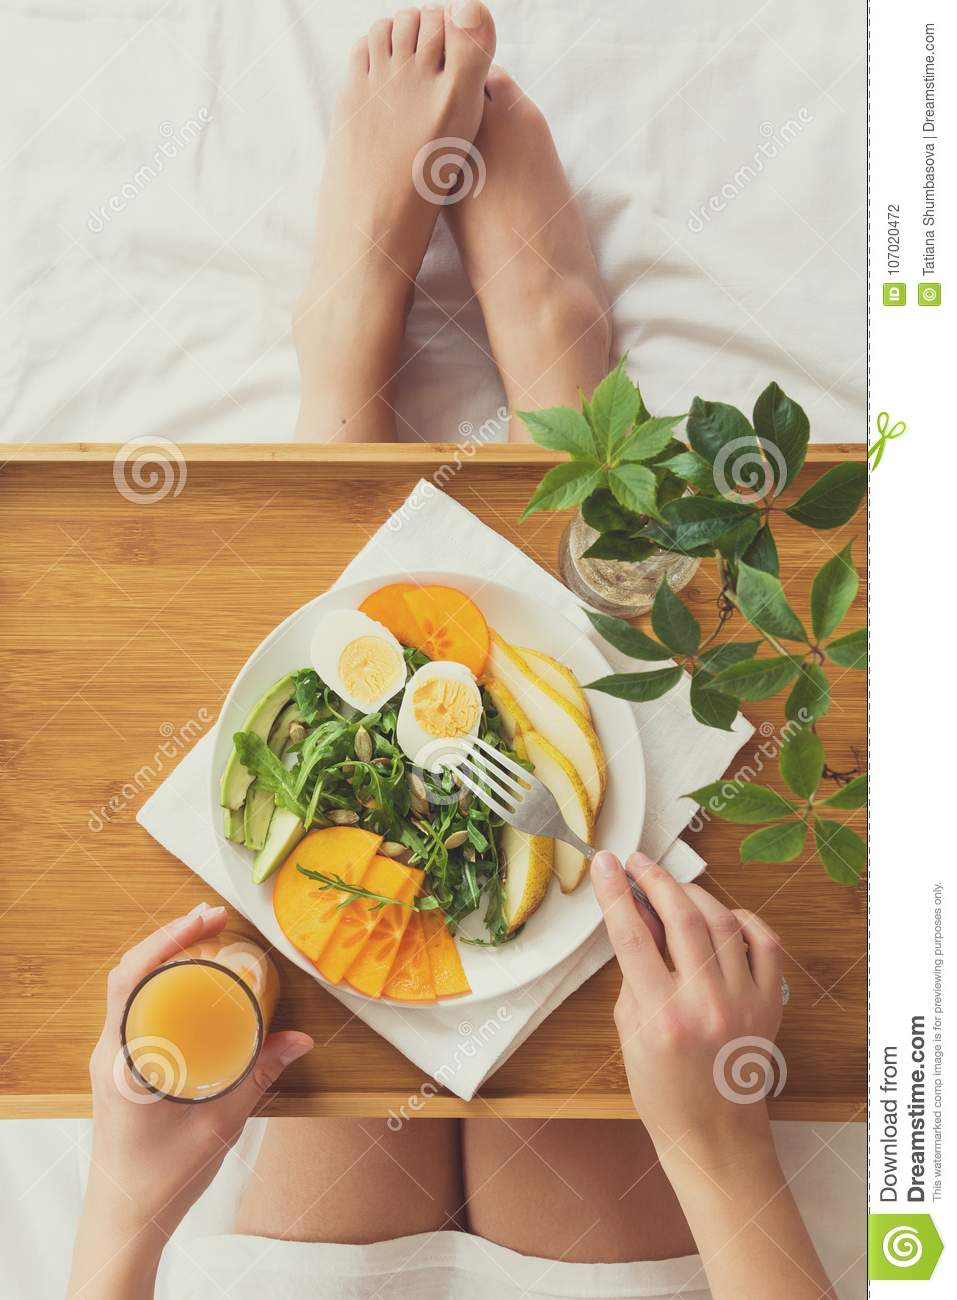 Healthy eating concept. Woman having breakfast in bed